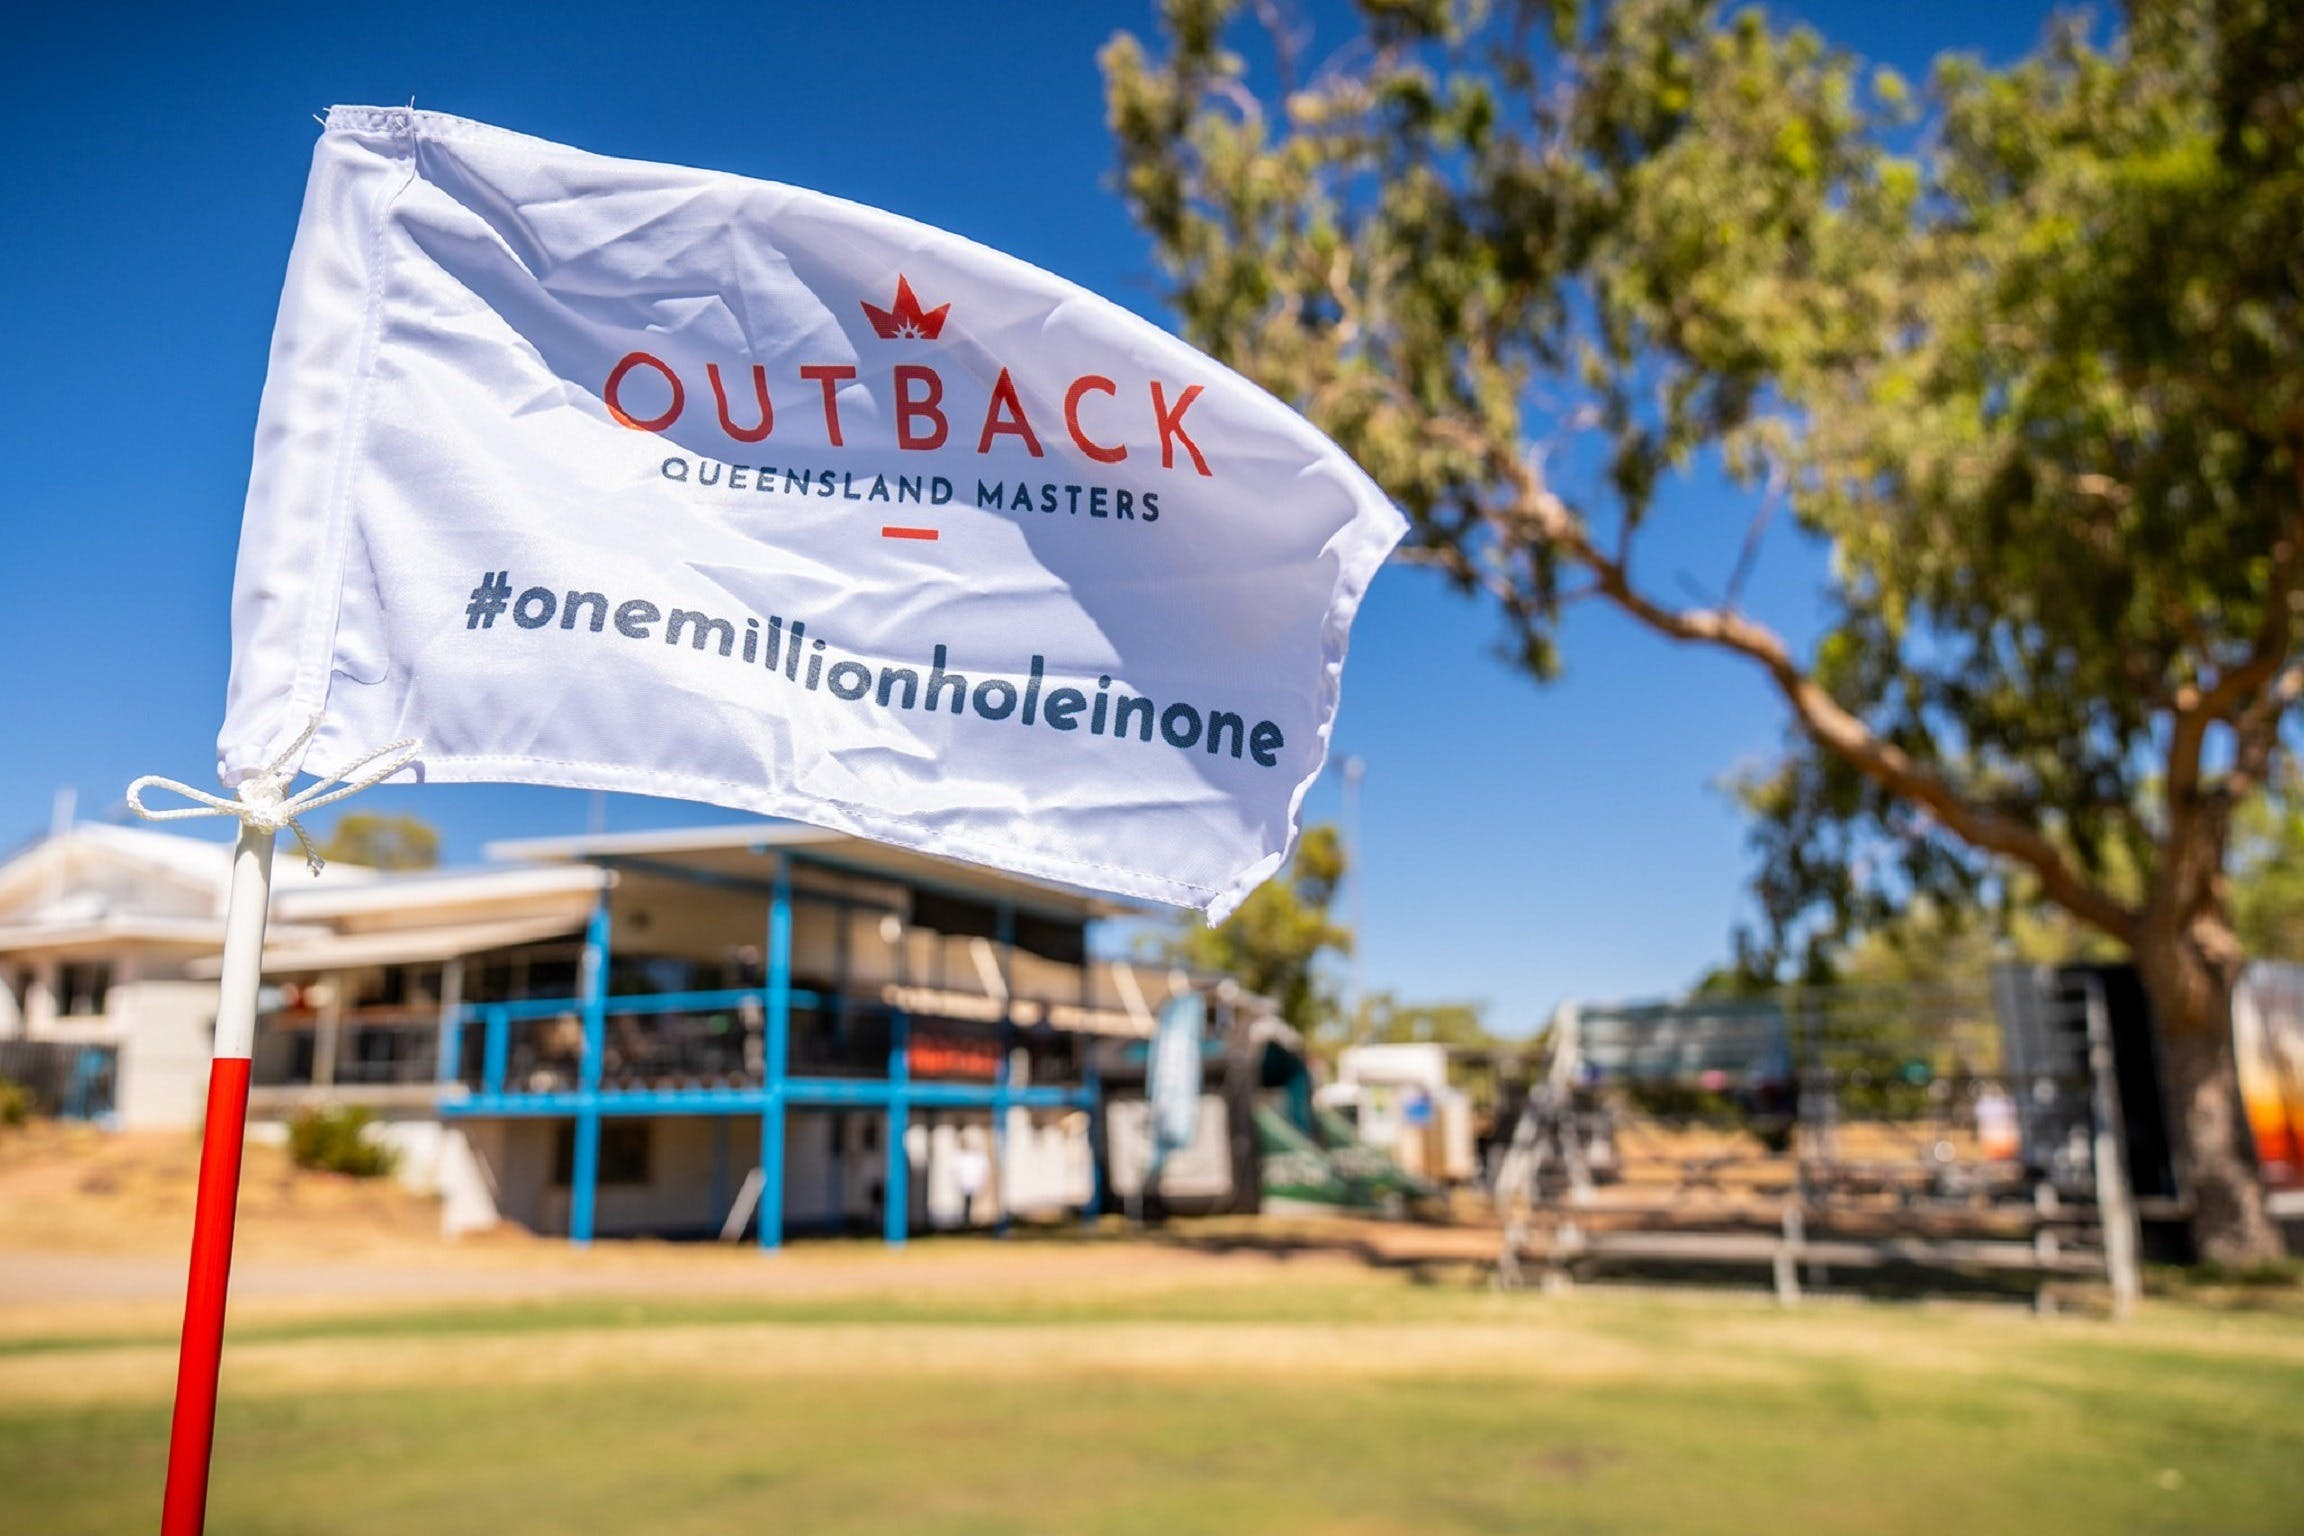 Outback Queensland Masters Charleville Leg 2021 - Hotel Accommodation